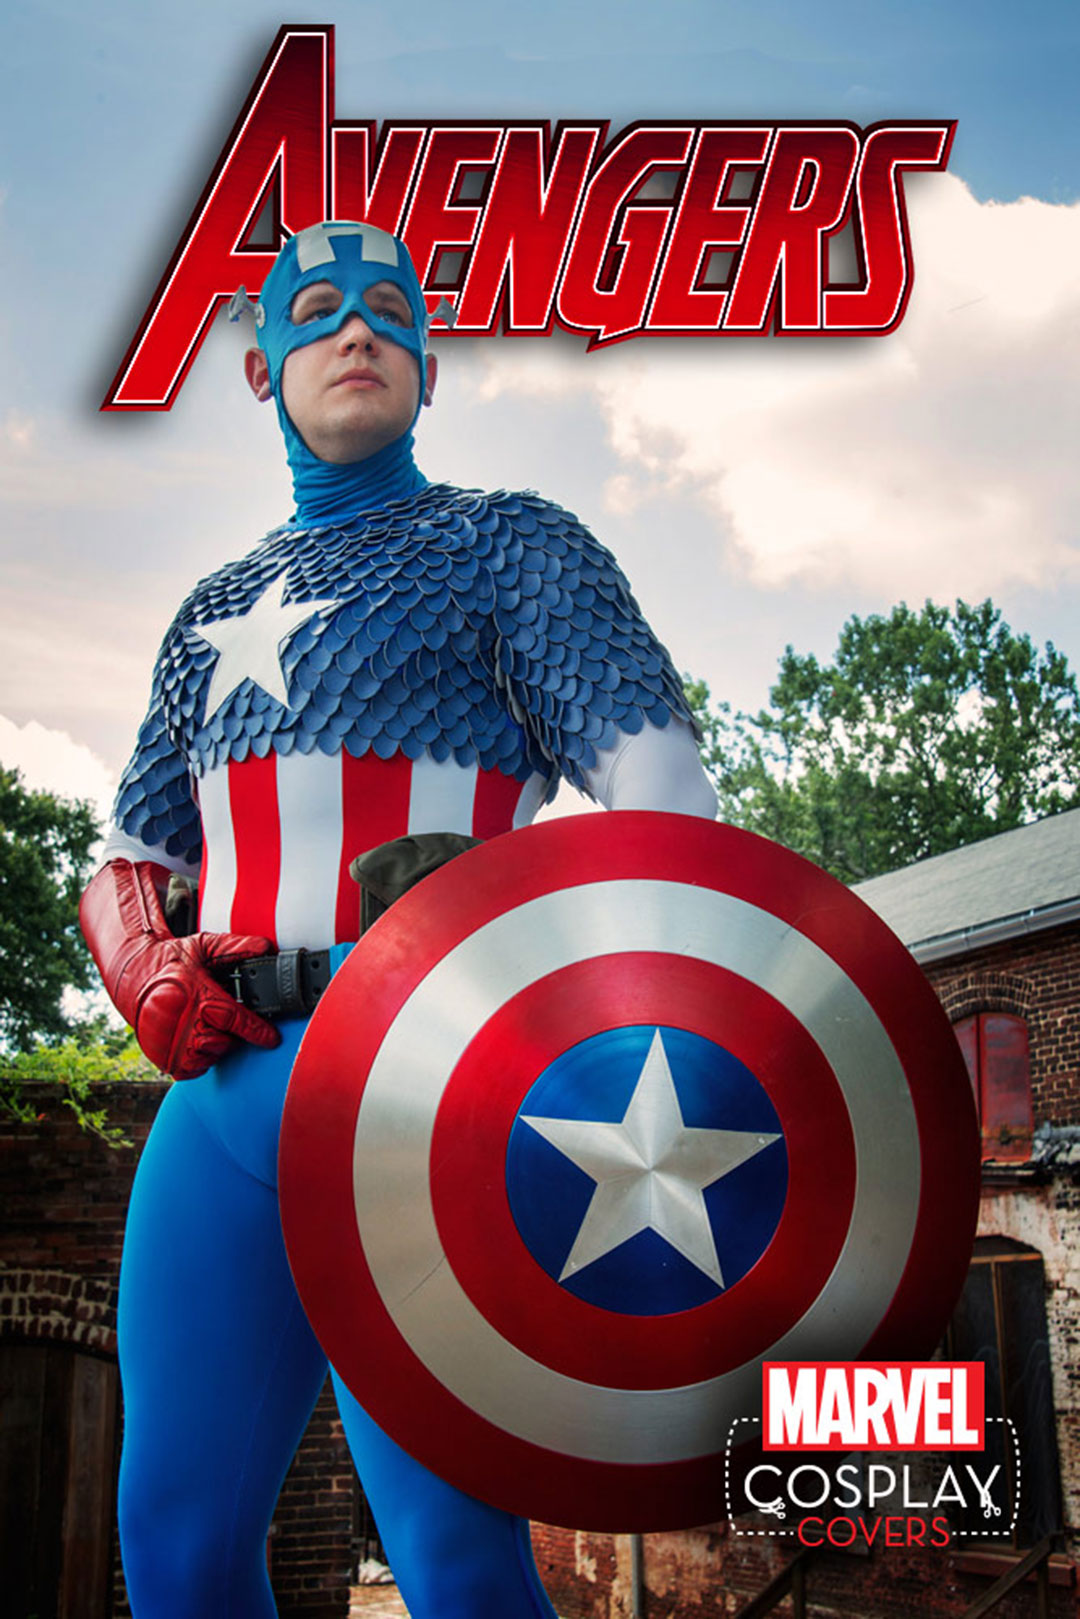 Couverture-Marvel-cosplay (11)